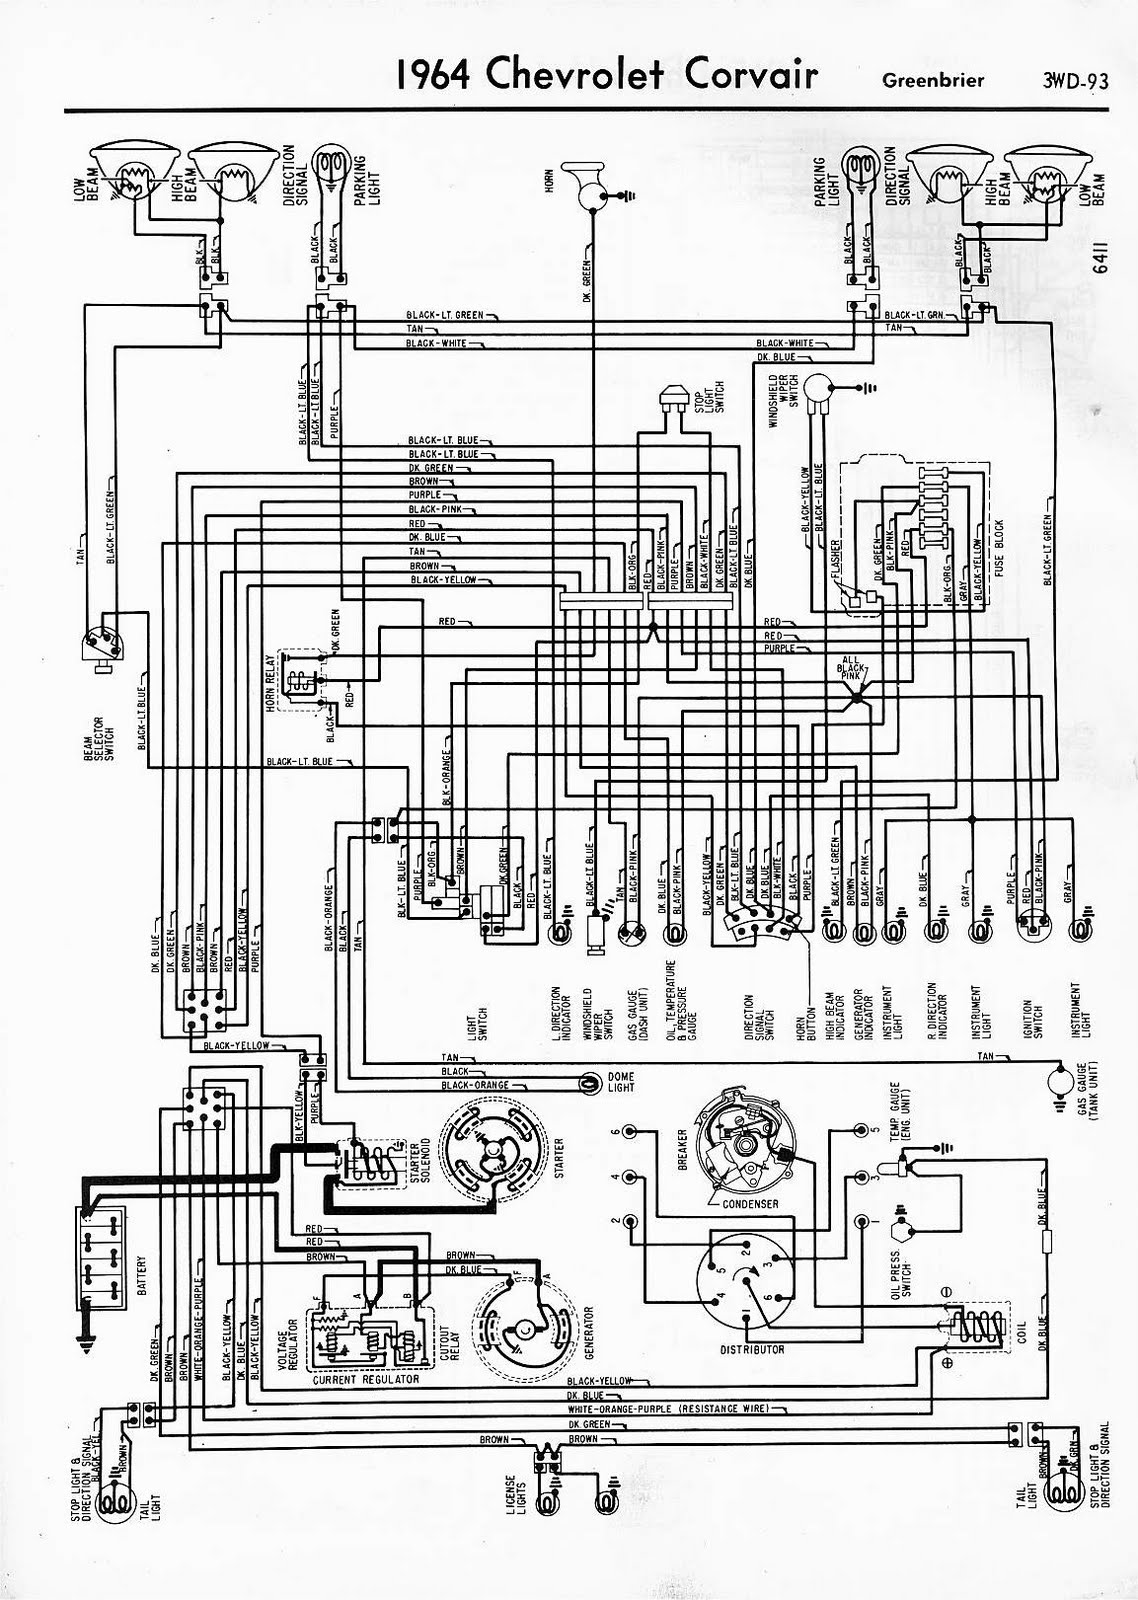 medium resolution of 63 corvair wiring diagram wiring diagram for you 1965 corvair wiring diagram corvair fuse box wiring